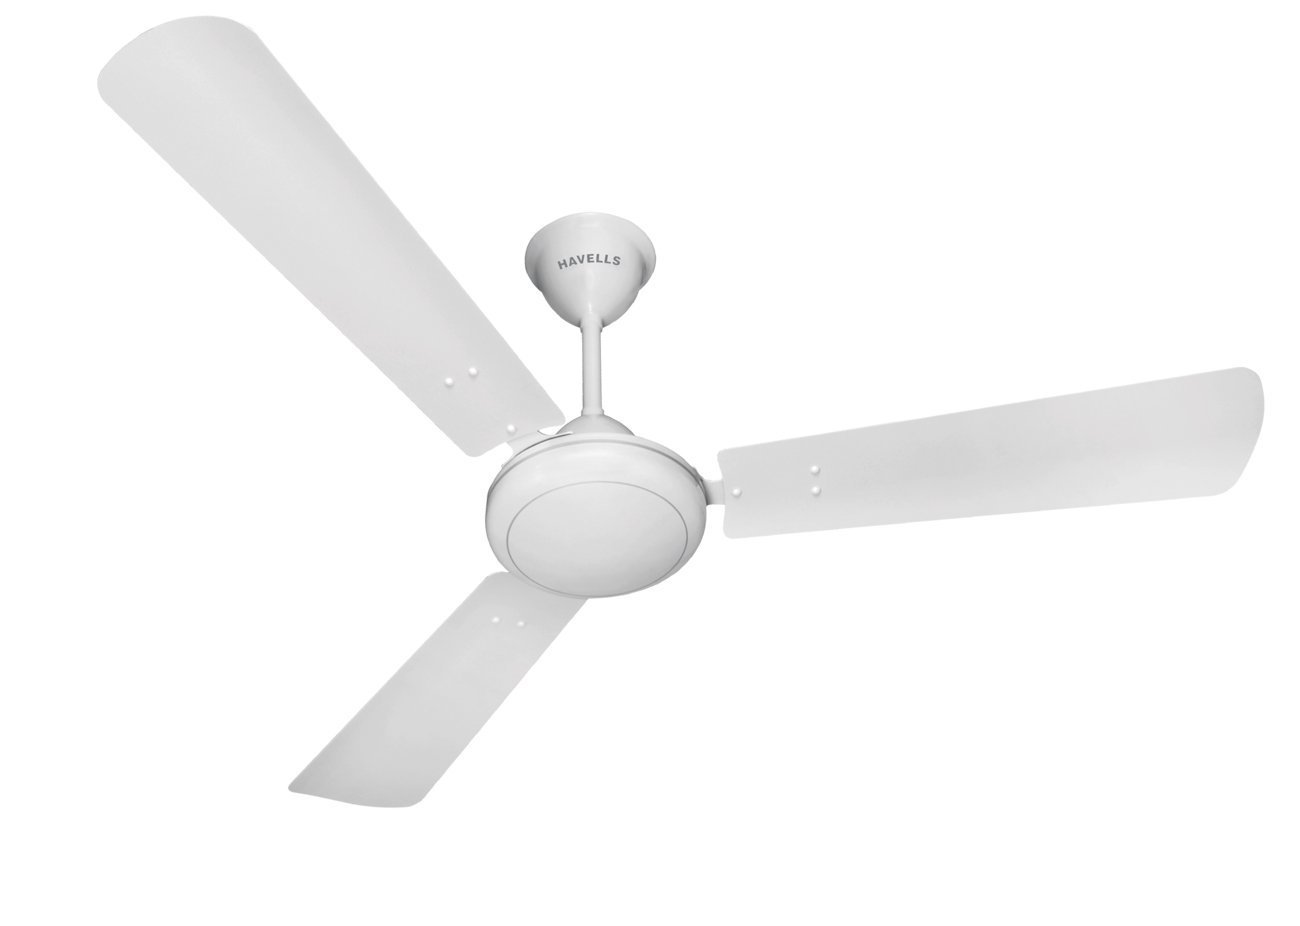 Buy havells 1200 mm fan ss 390 68 watt mettalic ceiling fanpearl buy havells 1200 mm fan ss 390 68 watt mettalic ceiling fanpearl white silver online at low prices in india amazon mozeypictures Image collections